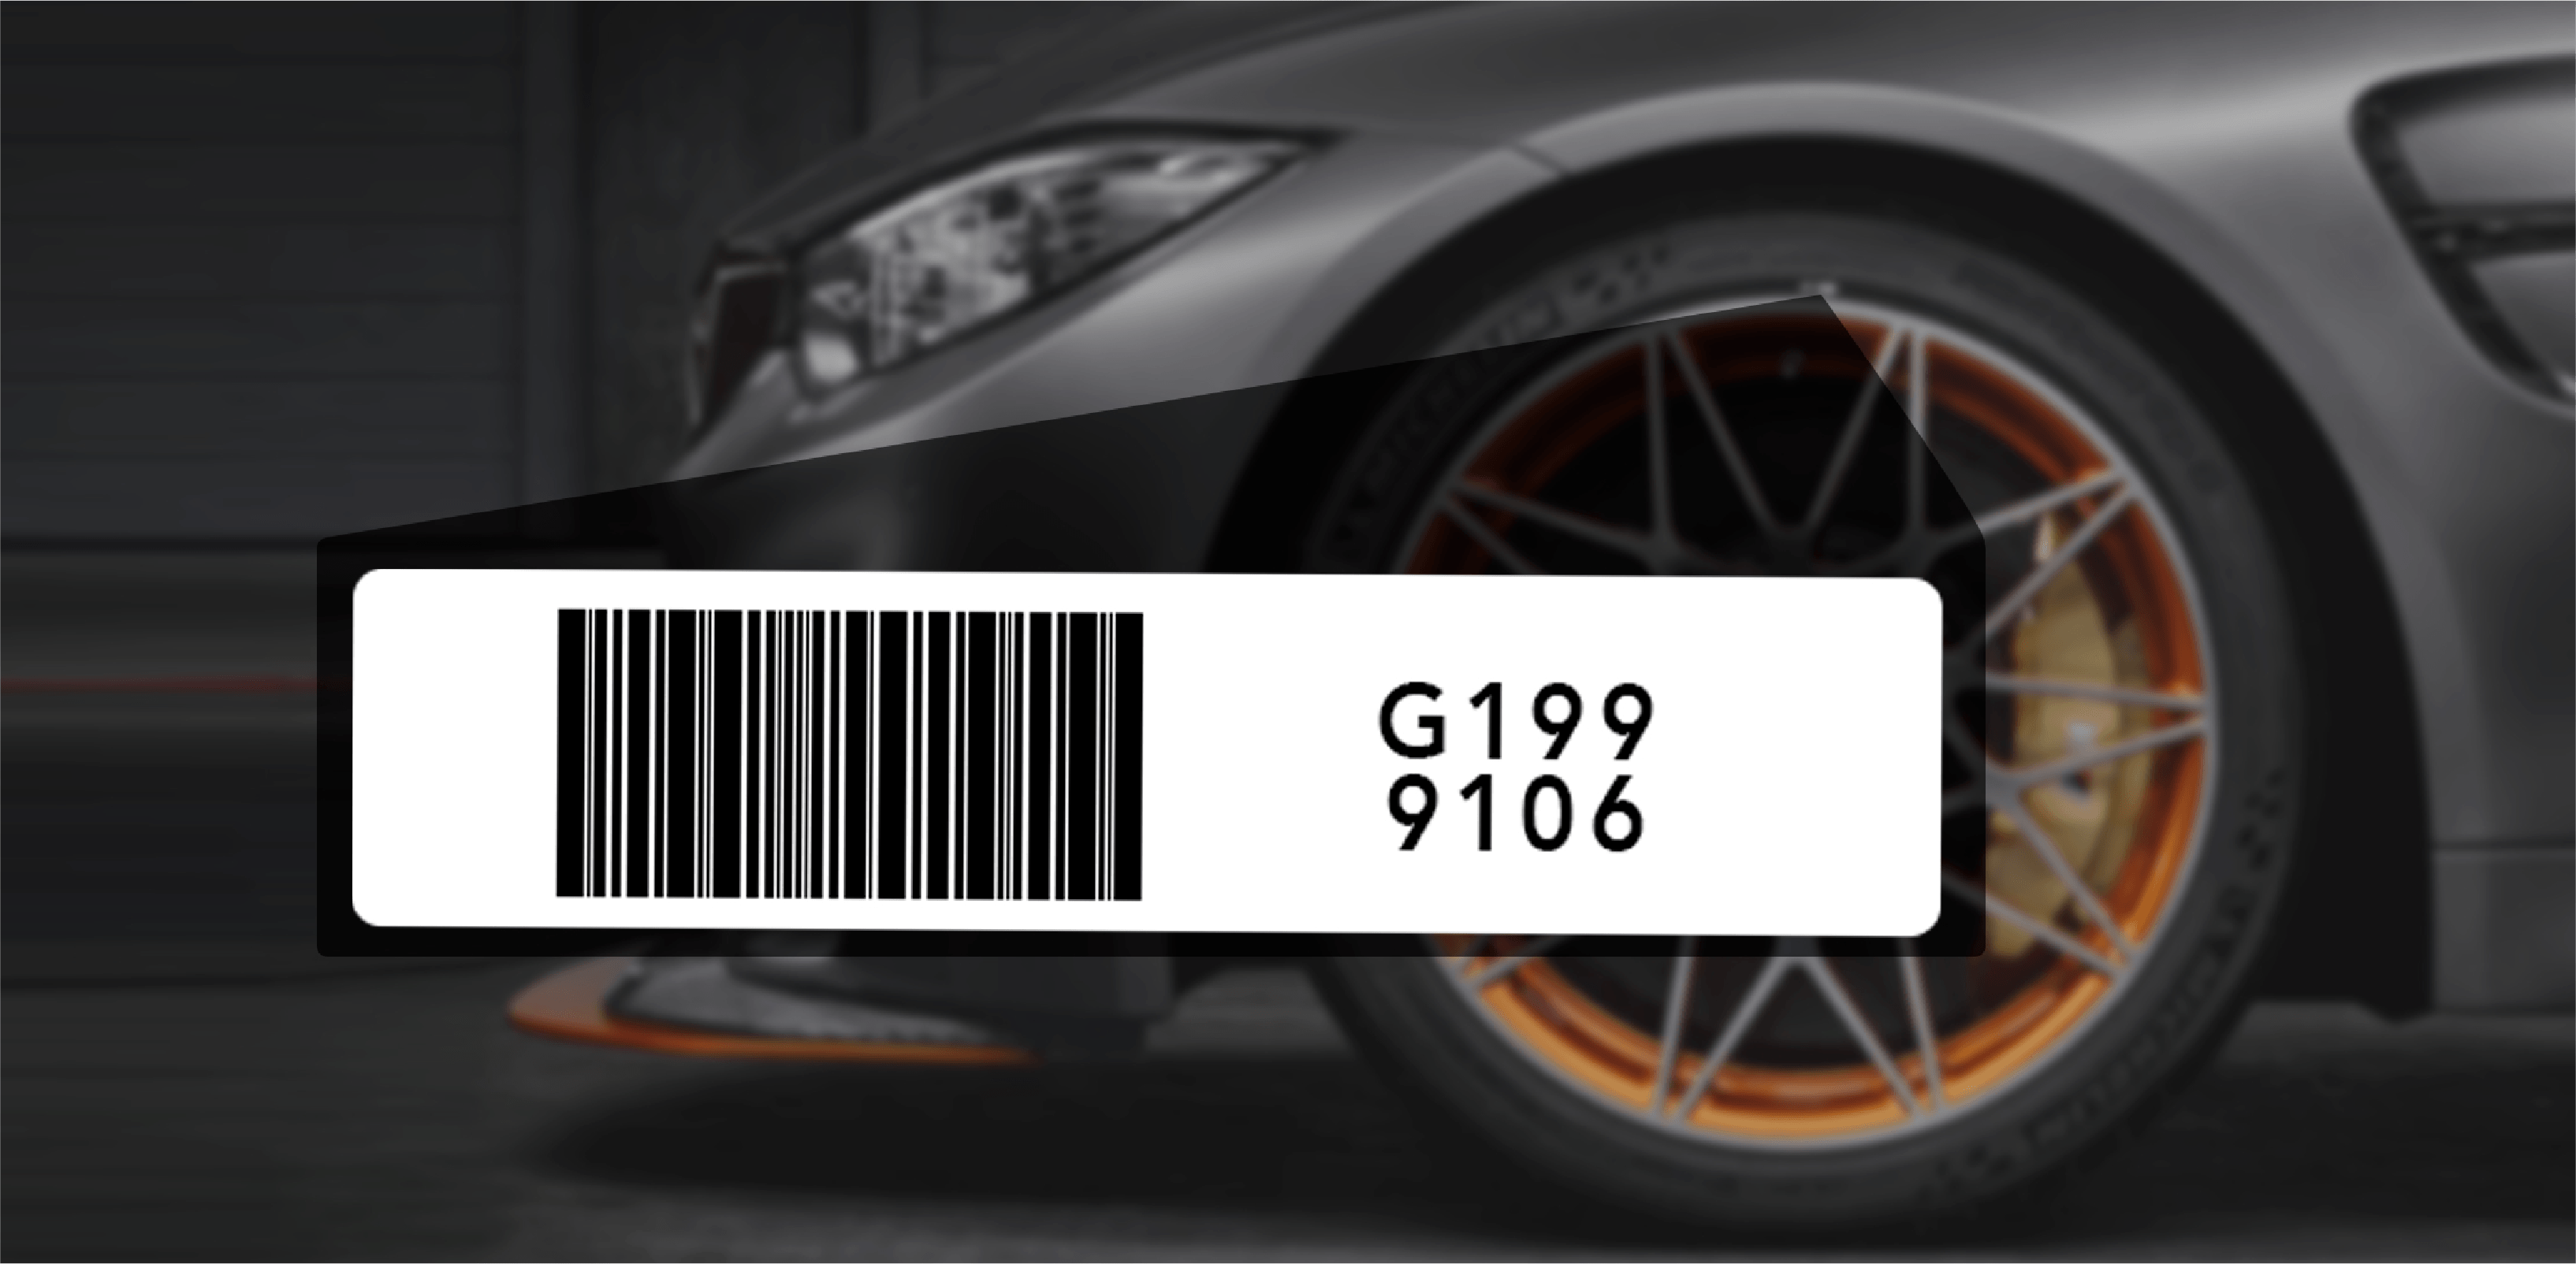 COVID-19 Impact on the Automotive Labels in Automotive Industry